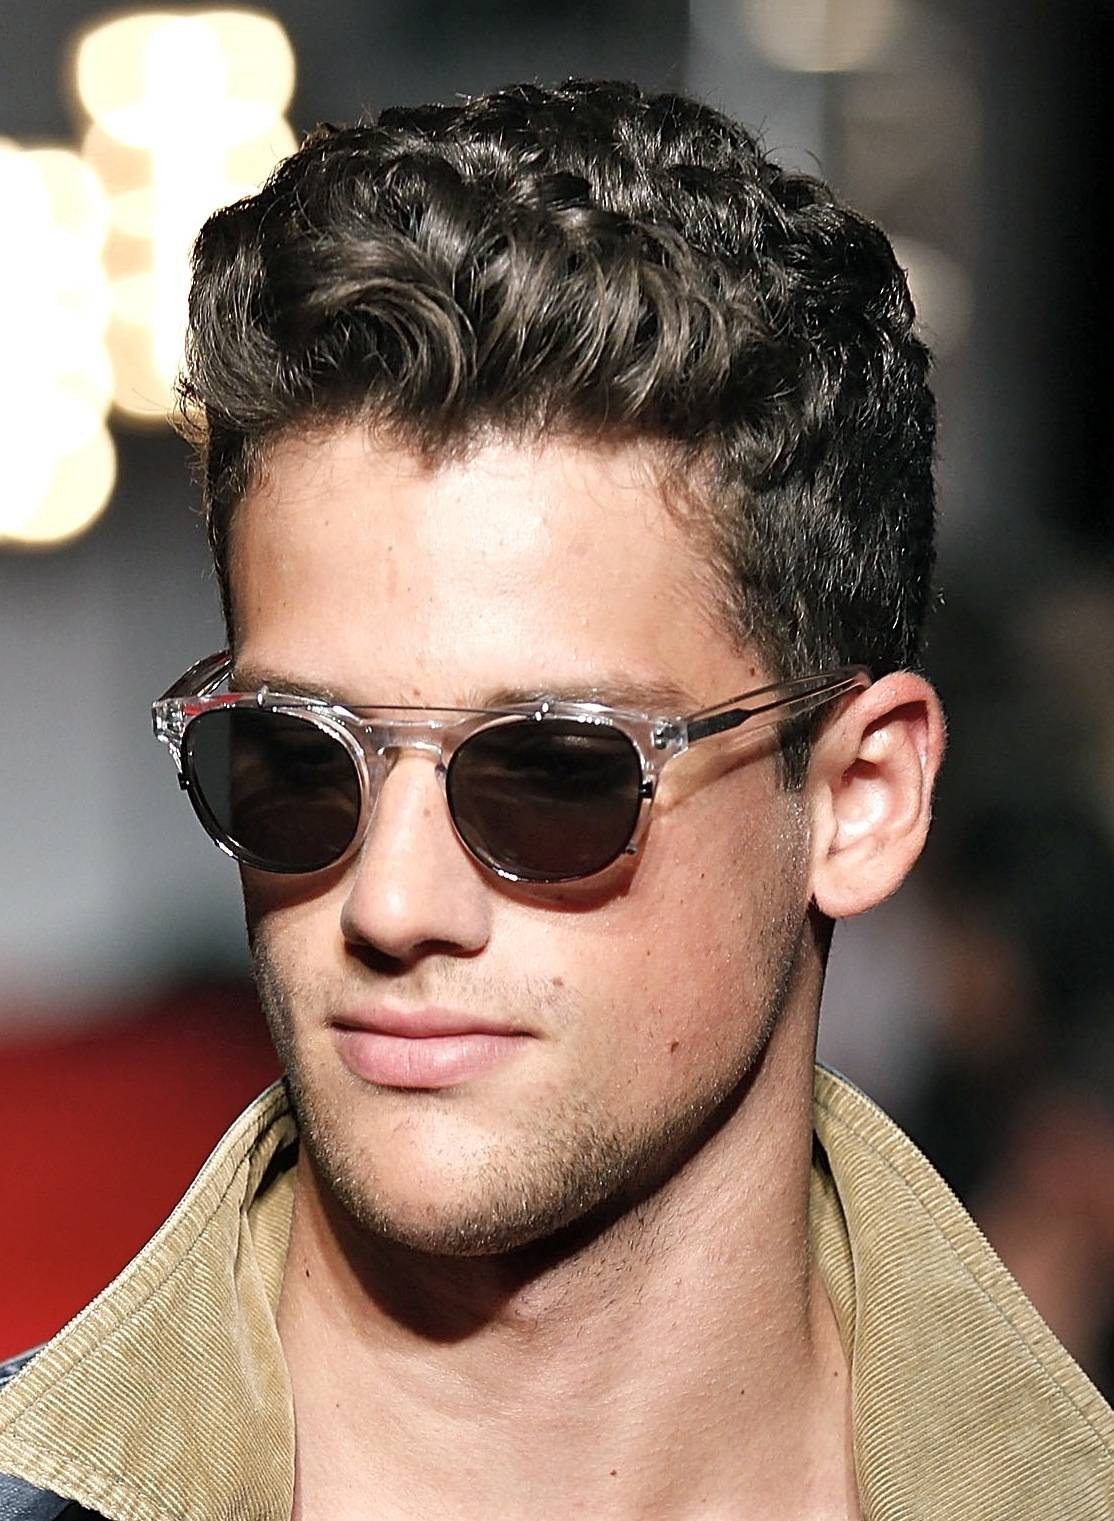 Best ideas about Mens Haircuts . Save or Pin Men's Curly Hairstyles Now.